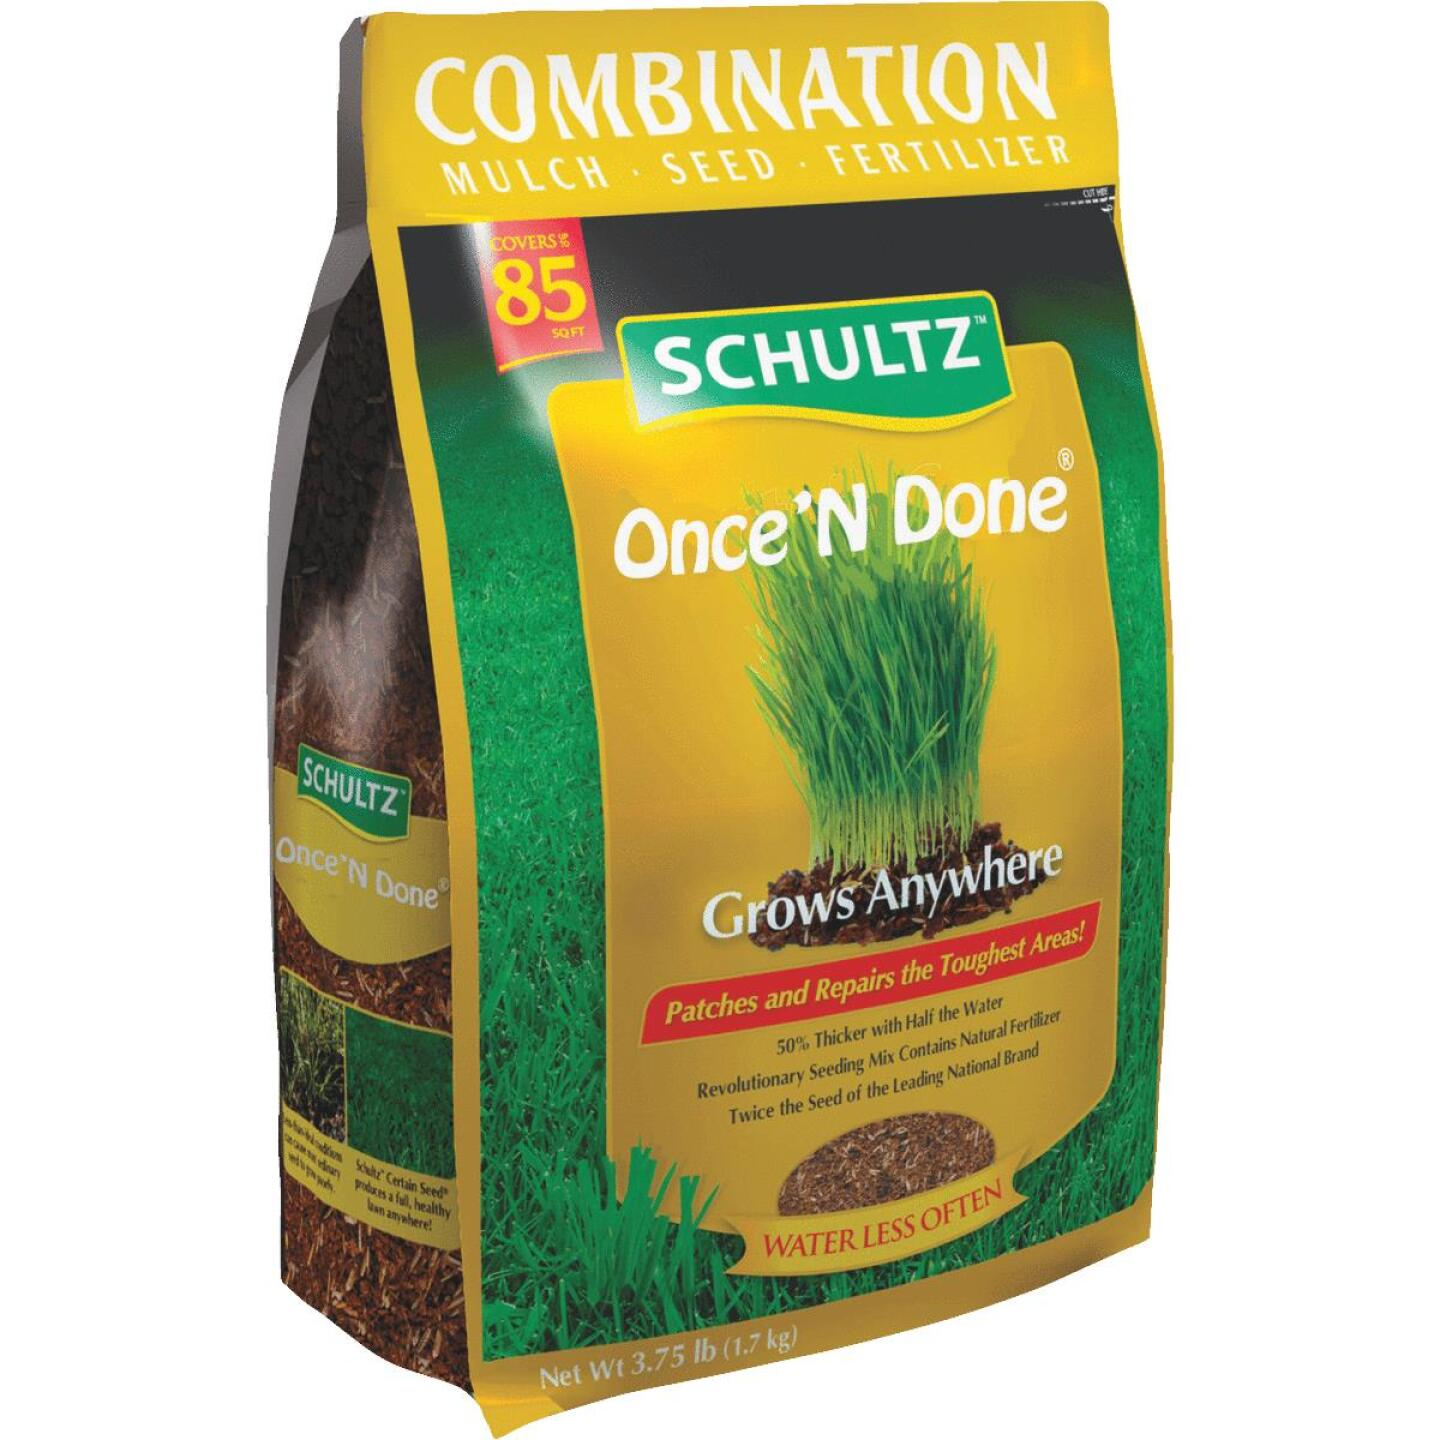 Schultz Once 'N Done 3.75 Lb. 85 Sq. Ft. Coverage Sun & Shade Grass Patch & Repair Image 4